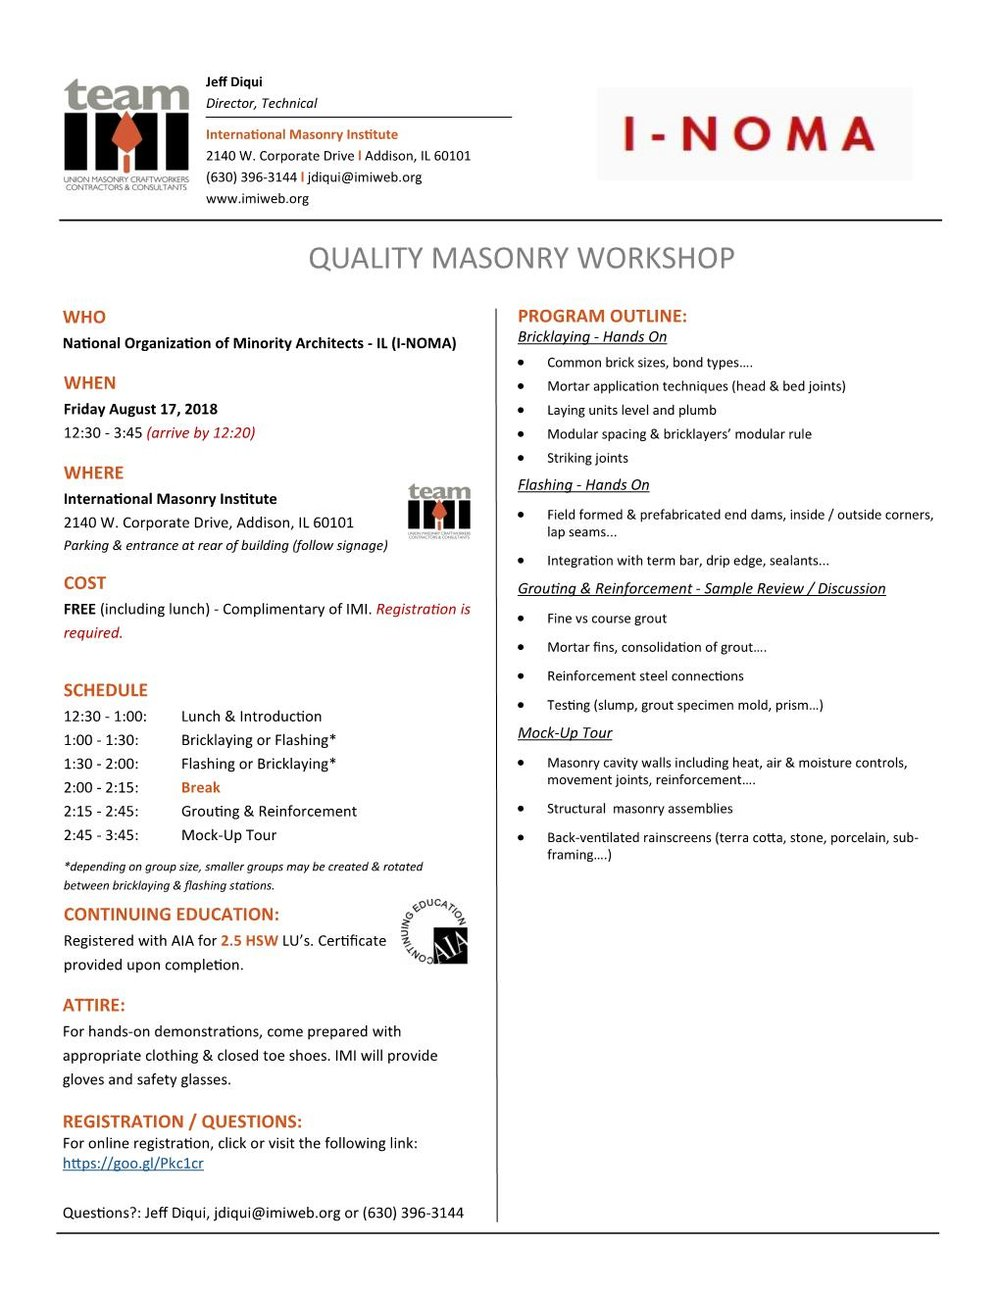 2018 08 17 Masonry Workshop Agenda (I-NOMA) - Project Pipeline.jpg